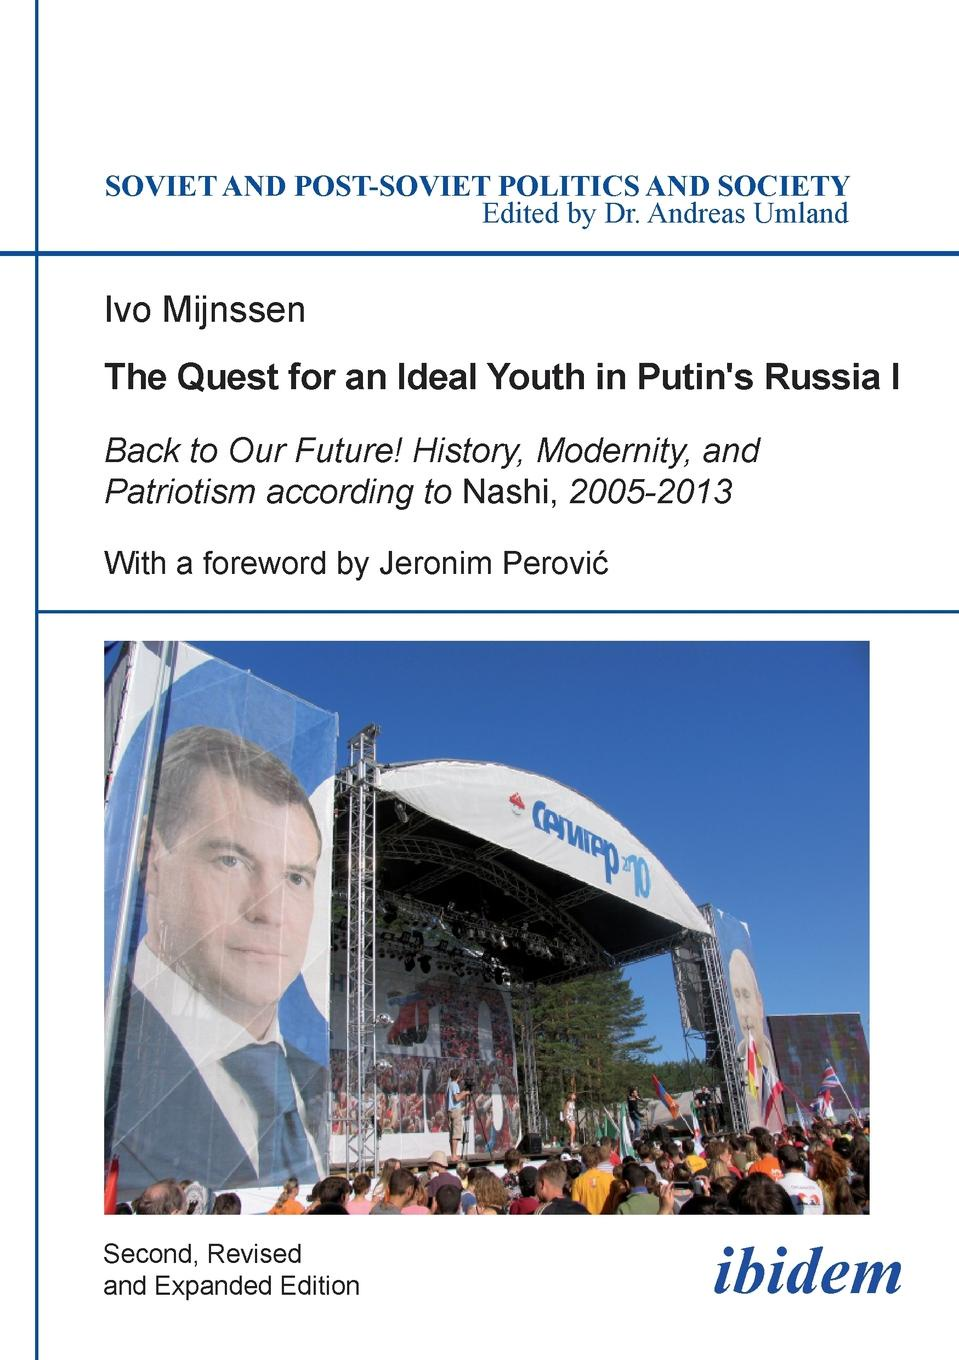 Ivo Mijnssen The Quest for an Ideal Youth in Putin.s Russia I. Back to Our Future. History, Modernity, and Patriotism according to Nashi, 2005-2013 автор не указан the world of art movement in early 20th century russia